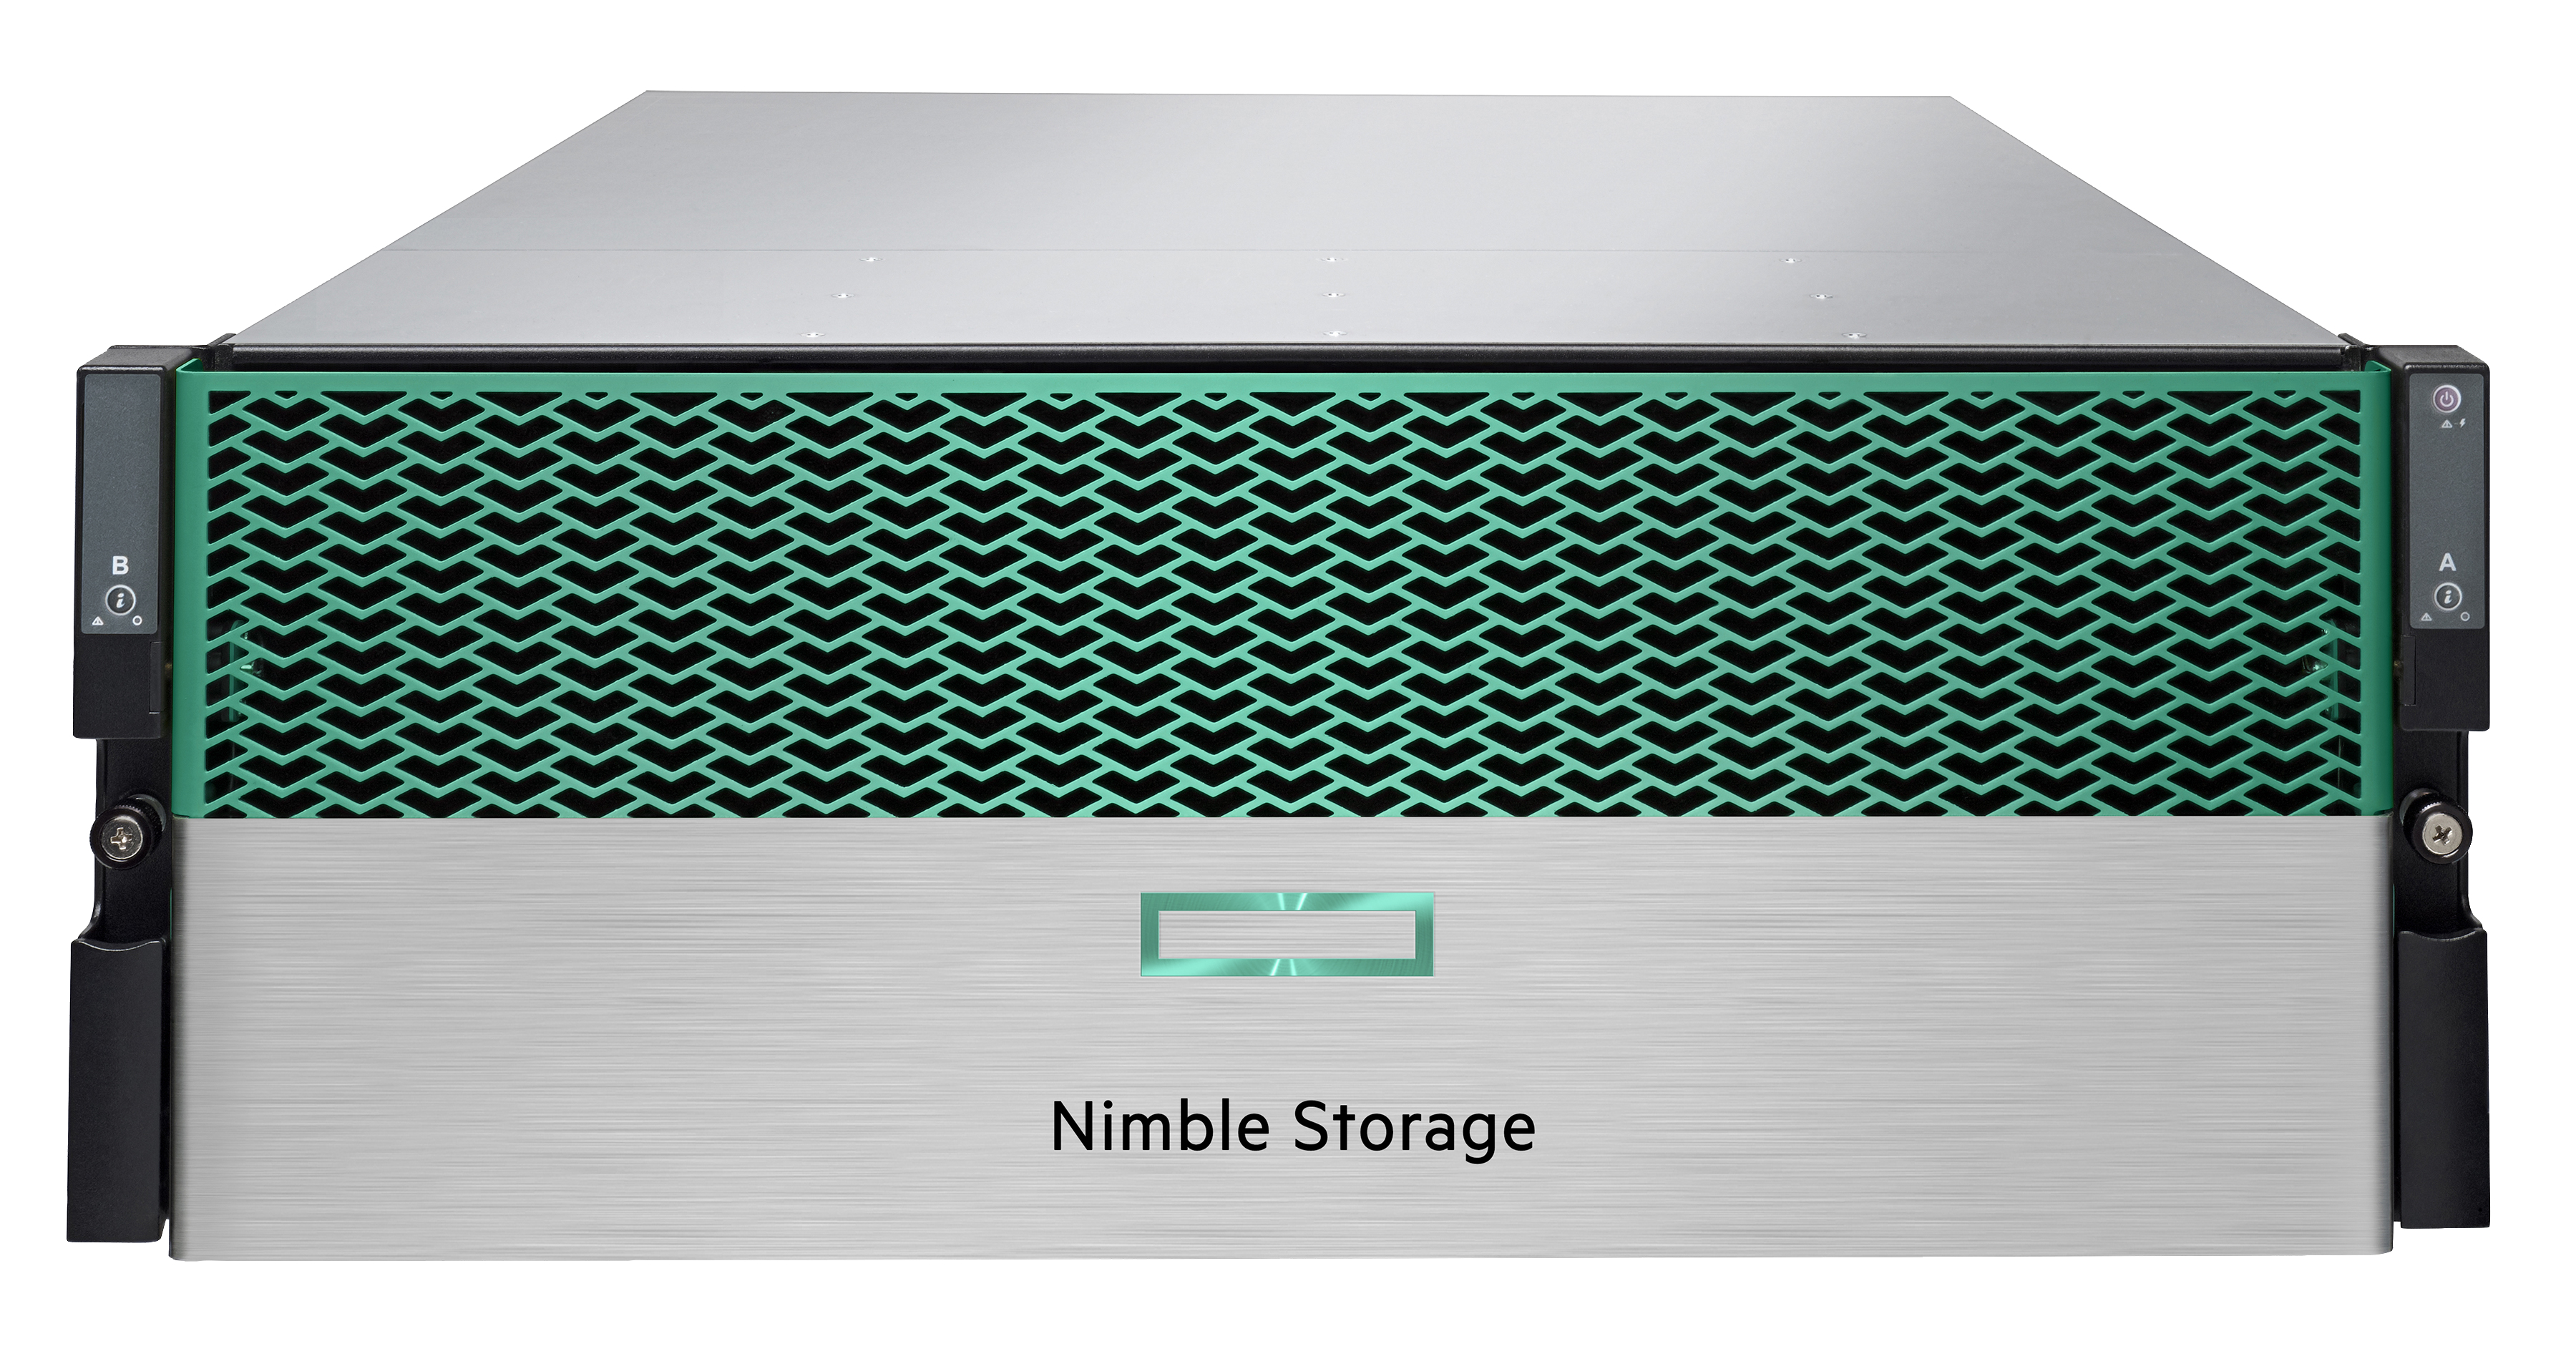 hpe_nimble_storage_adaptive_flash_arrays.png